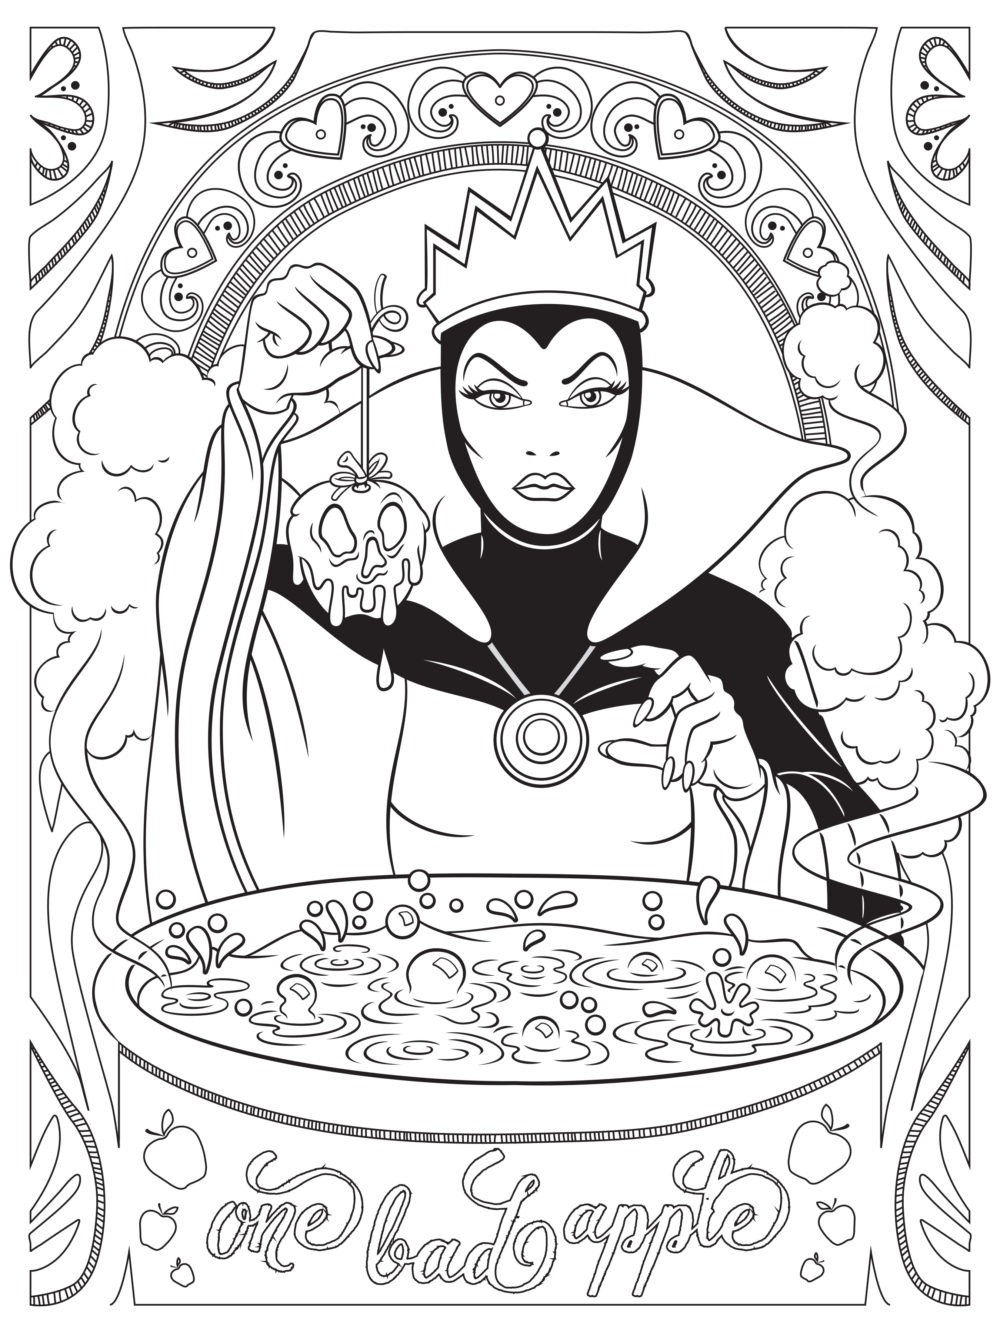 Fresh Celebrate National Coloring Book Day With Disney Style